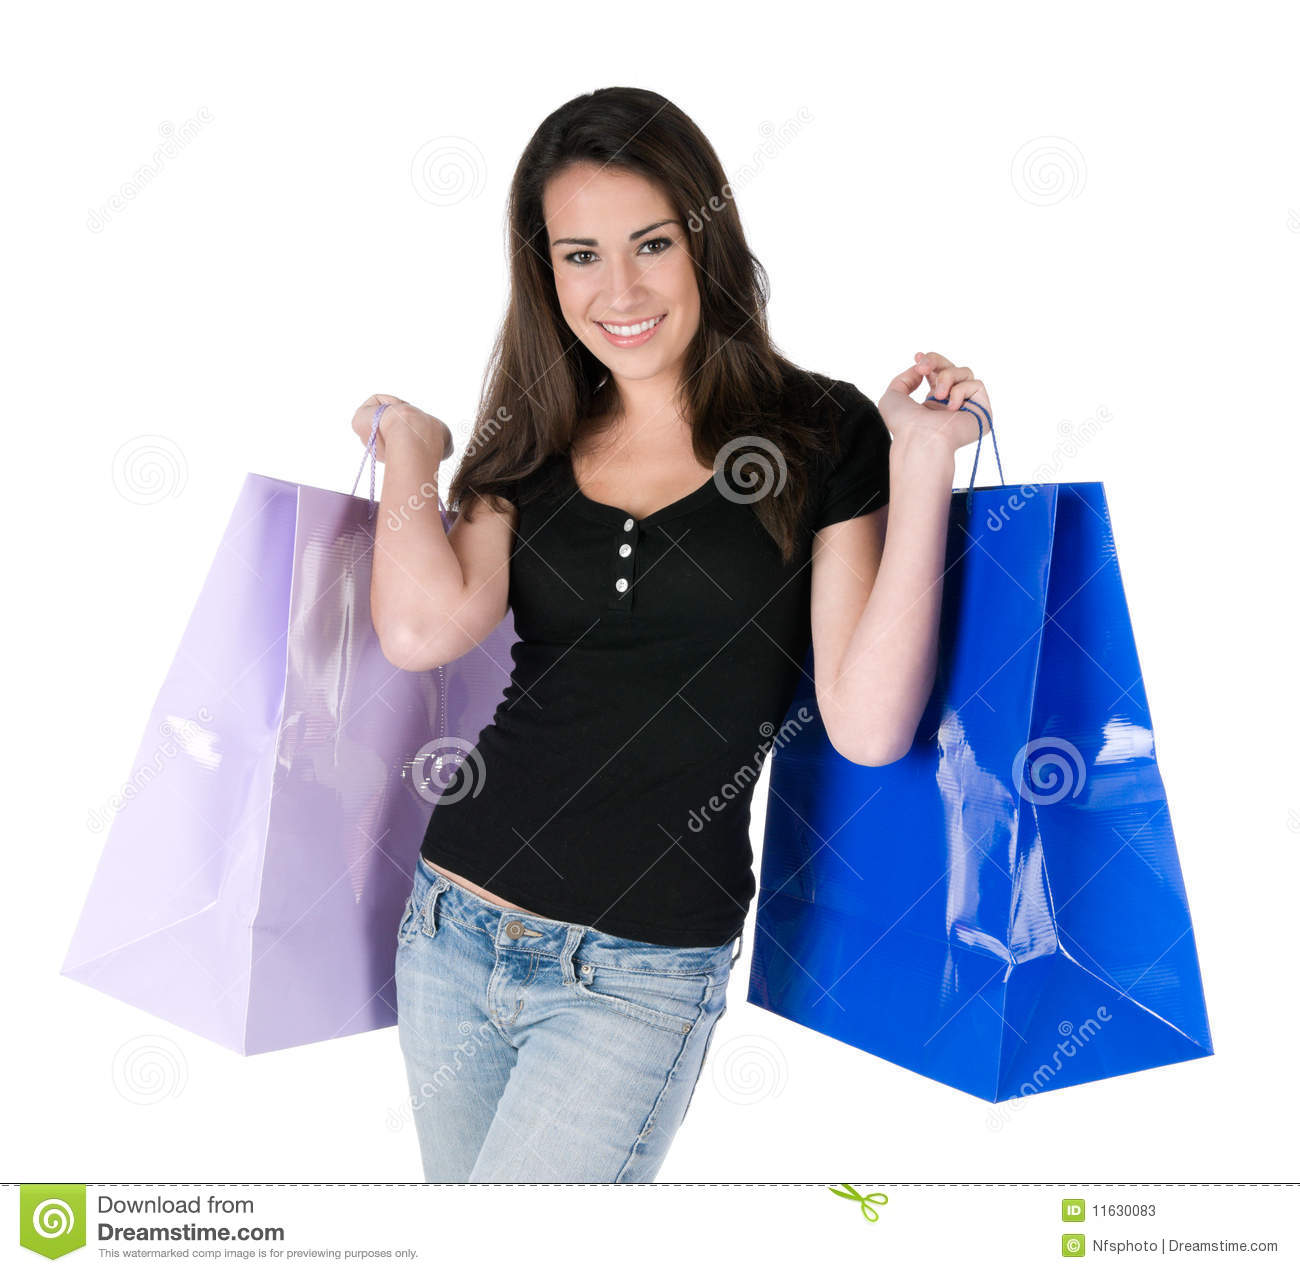 Innovative Woman In Apron Holding Grocery Bag Stock Photo - Image 6525860